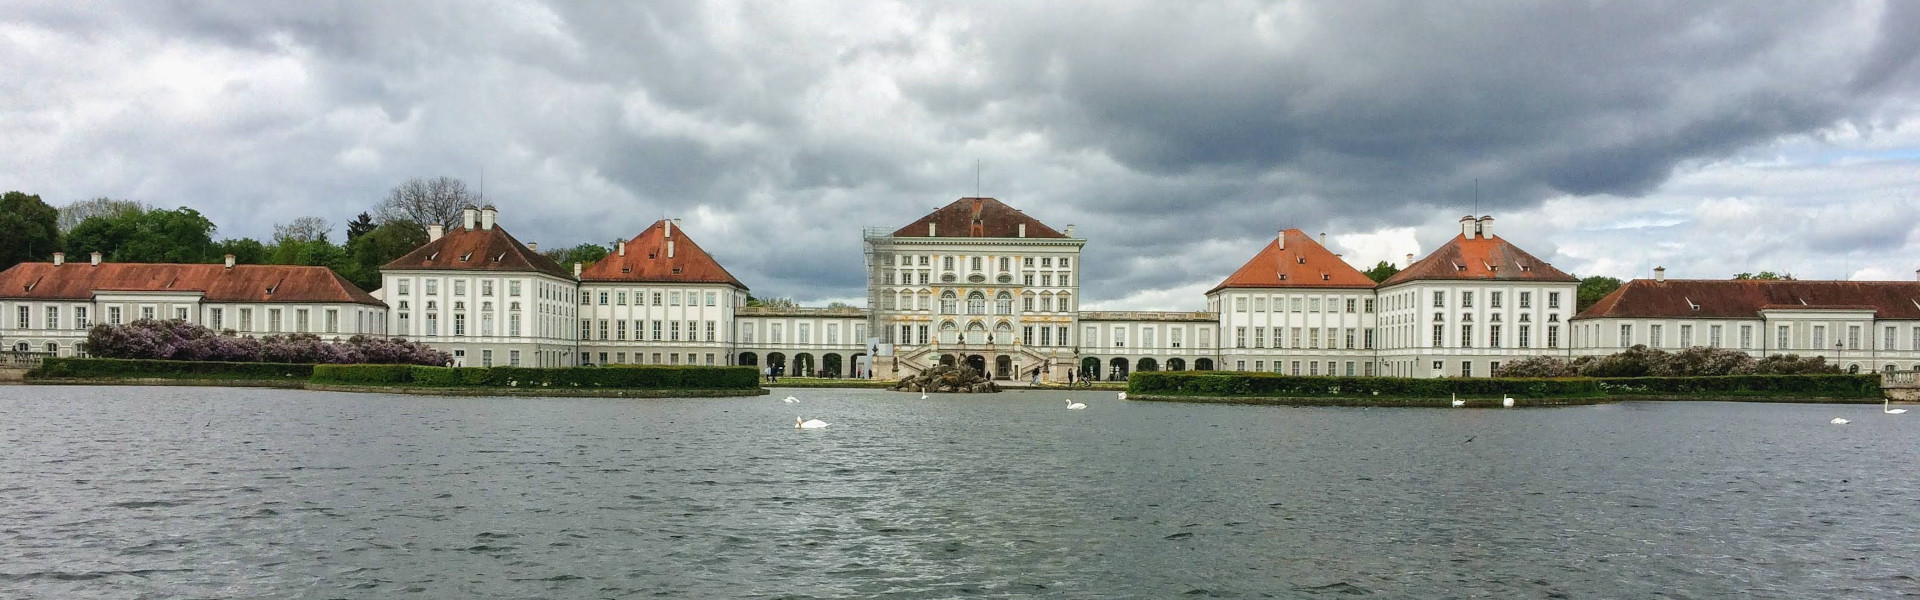 German Courses in Munich: Nymphenburg Castle in Munich